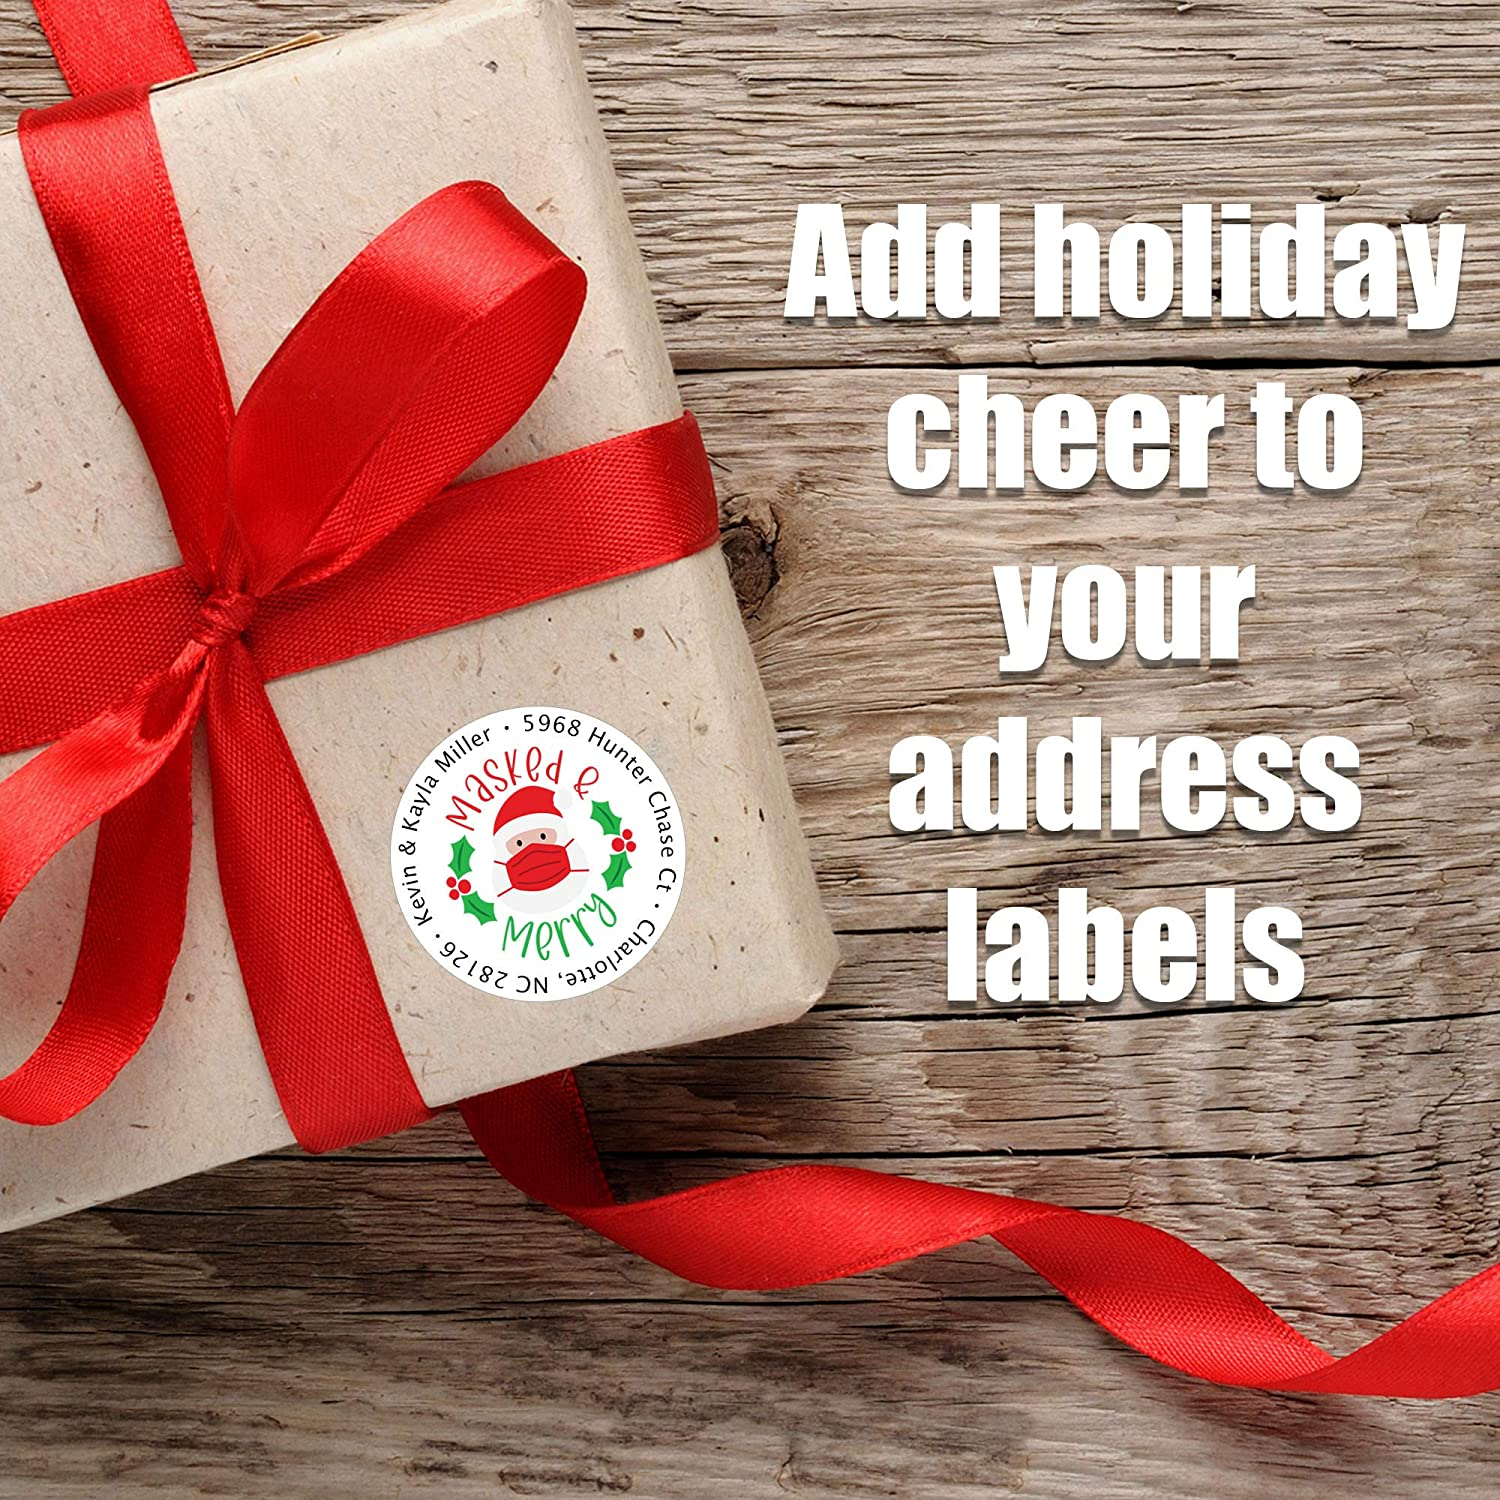 Self Adhesive Stickers with 2020 Designs Masked /& Merry Personalized Christmas Address Labels Set of 80 Mailing Labels Flat Sheet Round Labels for Envelopes Custom Holiday Return Address Labels